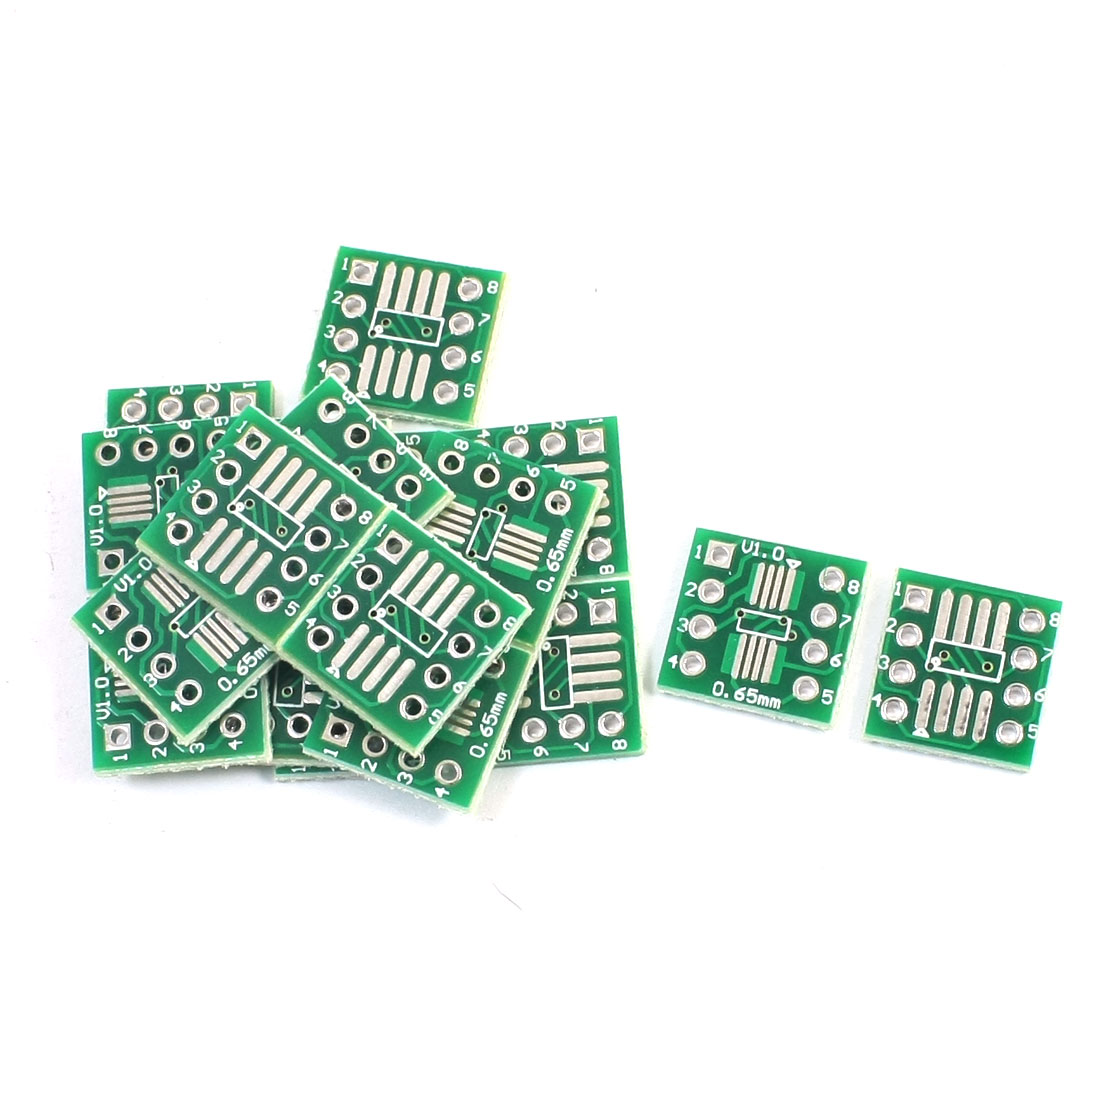 20 Pcs Dual Sides SMD SOP8 0.65mm to DIP8 2.54mm Pitch IC PCB Adapter Plate Convertor Board